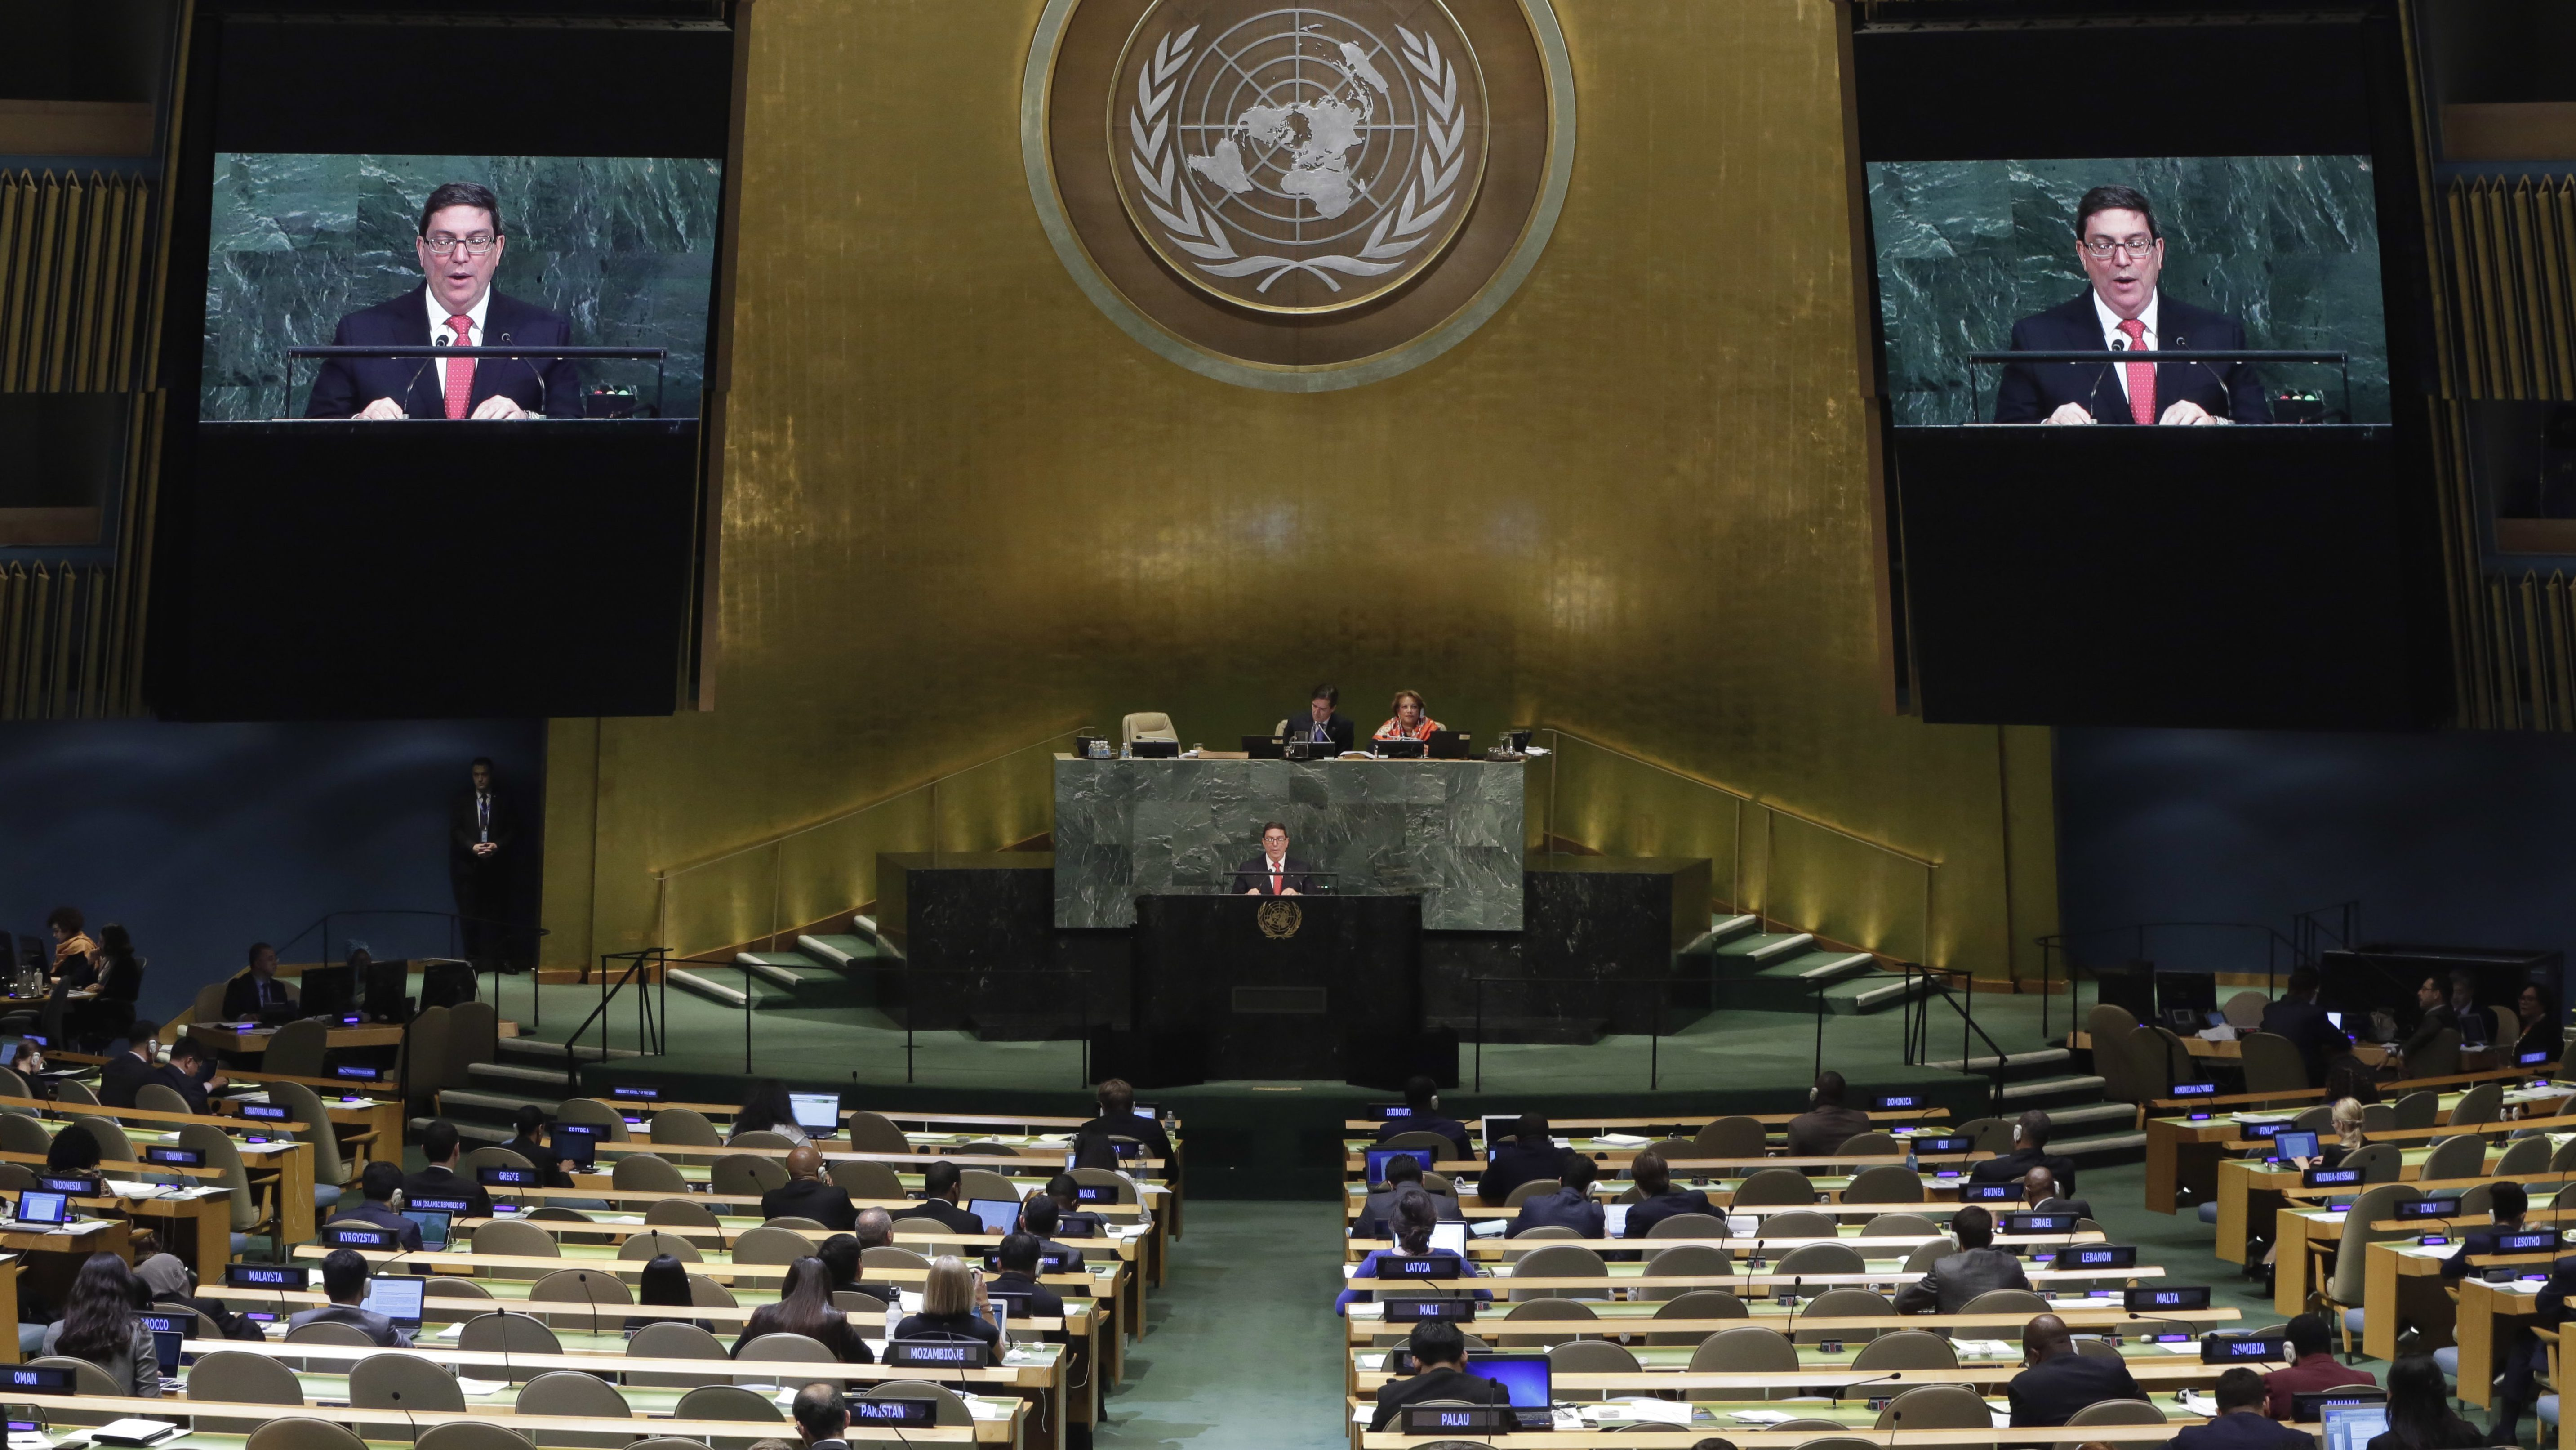 Foreign Minister Bruno Rodríguez Parrilla of Cuba addresses the United Nations General Assembly, at U.N. headquarters, Friday, Sept. 22, 2017.